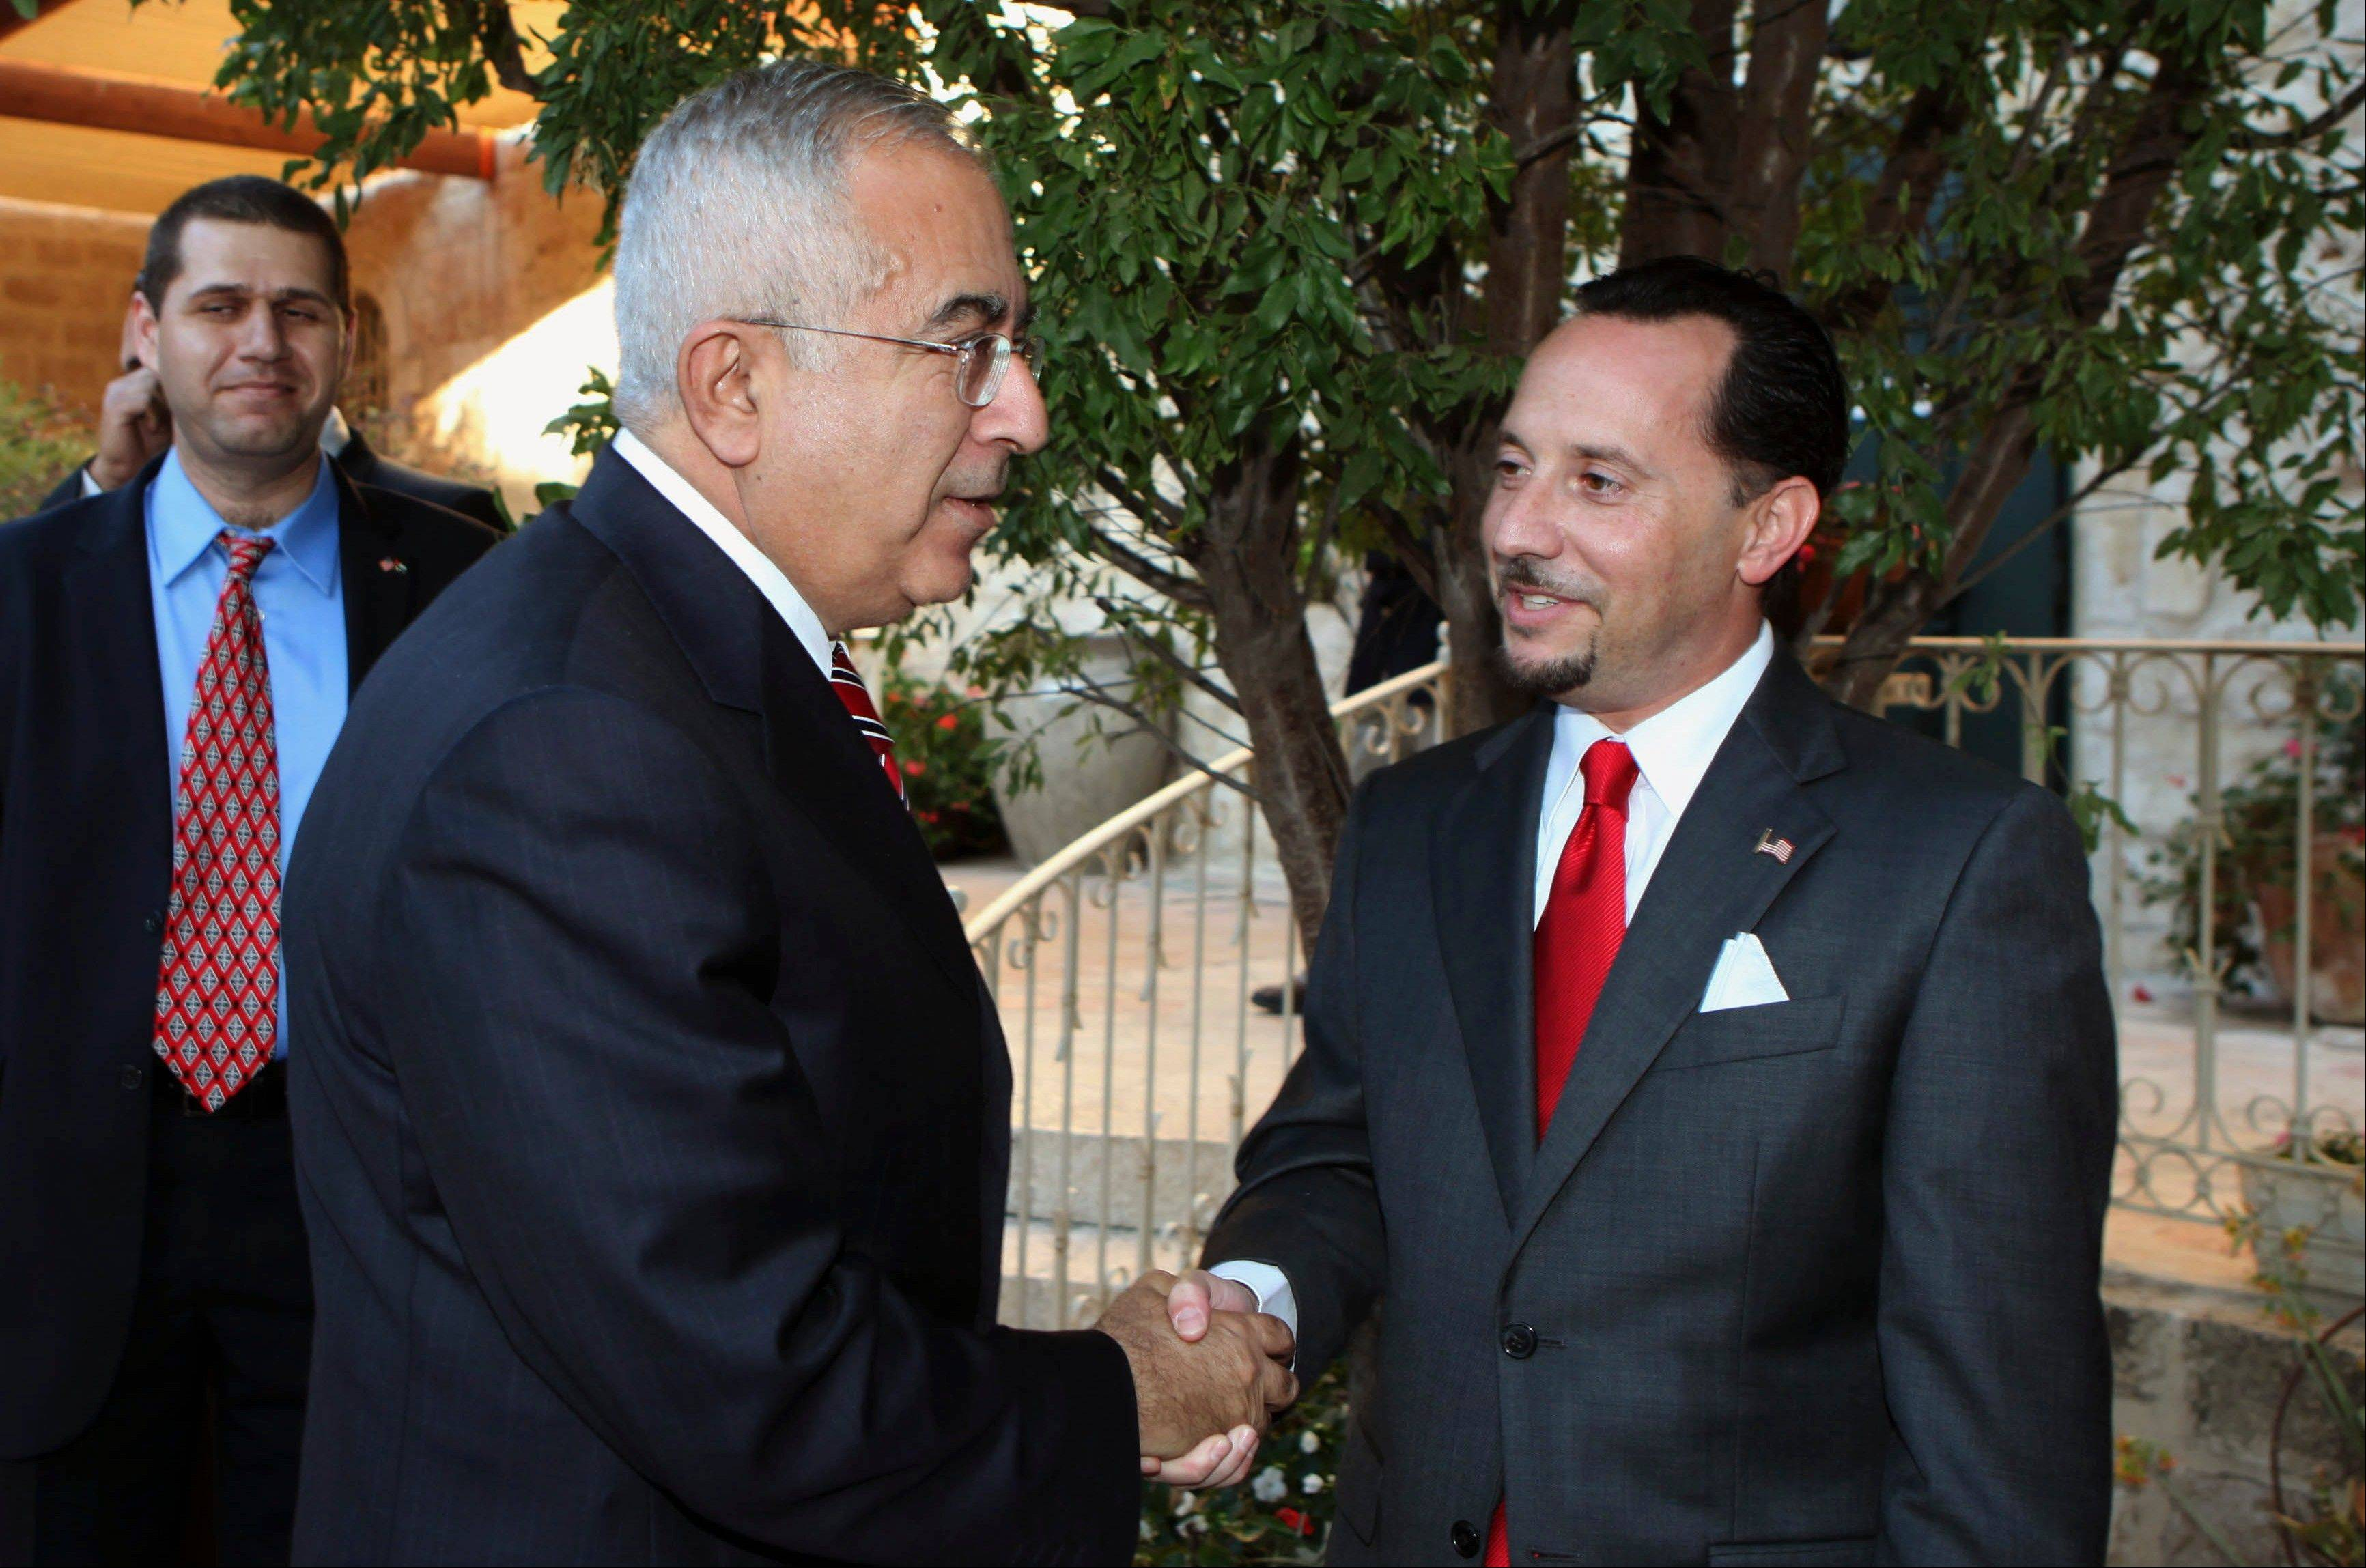 "In this Wednesday, June 30, 2010 file photo, U.S. Consul General of Jerusalem Daniel Rubinstein, right, shakes hands with Palestinian Prime Minister Salam Fayyad, during a reception ahead of July 4 U.S. Independence Day celebrations at the American Consulate in Jerusalem. Senior Palestinian official Saeb Erekat said the U.S. Consul General in Jerusalem, Daniel Rubinstein told him Friday that the U.S. will take ""punitive measures"" to stop financial support if the Palestinians proceed with seeking U.N. recognition of statehood in September."